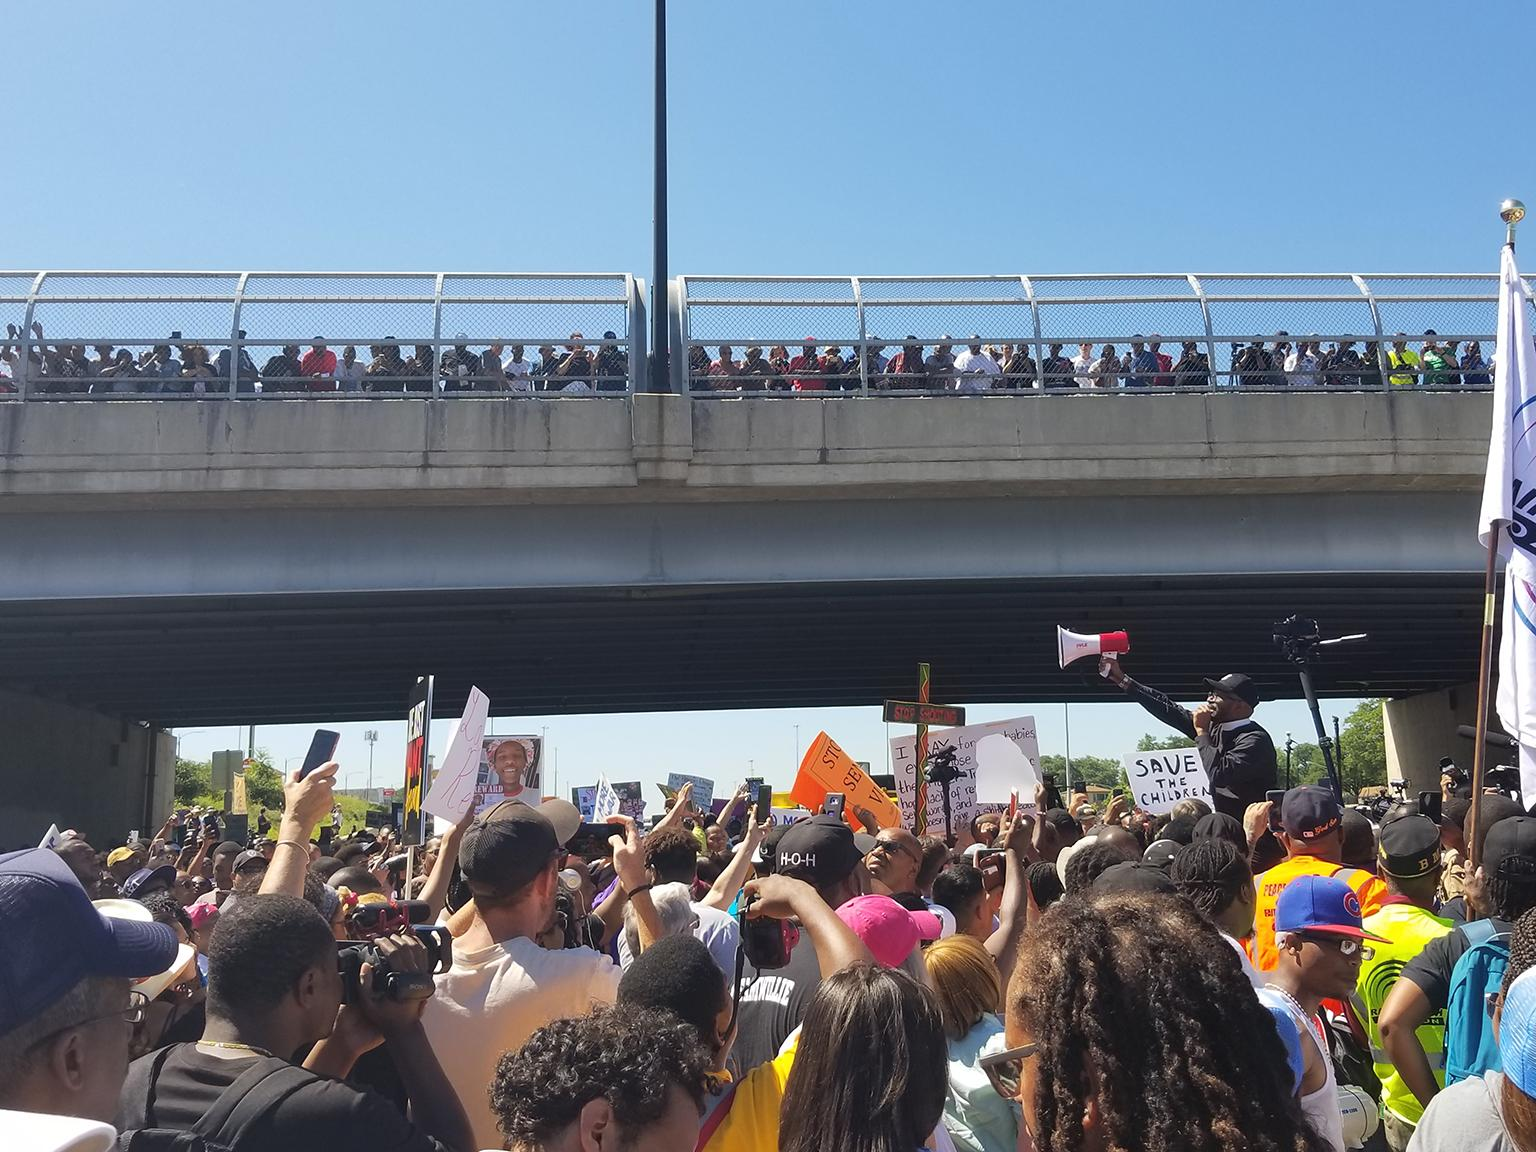 Protesters pause at the 76th Street overpass on the Dan Ryan Expressway on July 7, 2018. (Matt Masterson / Chicago Tonight)